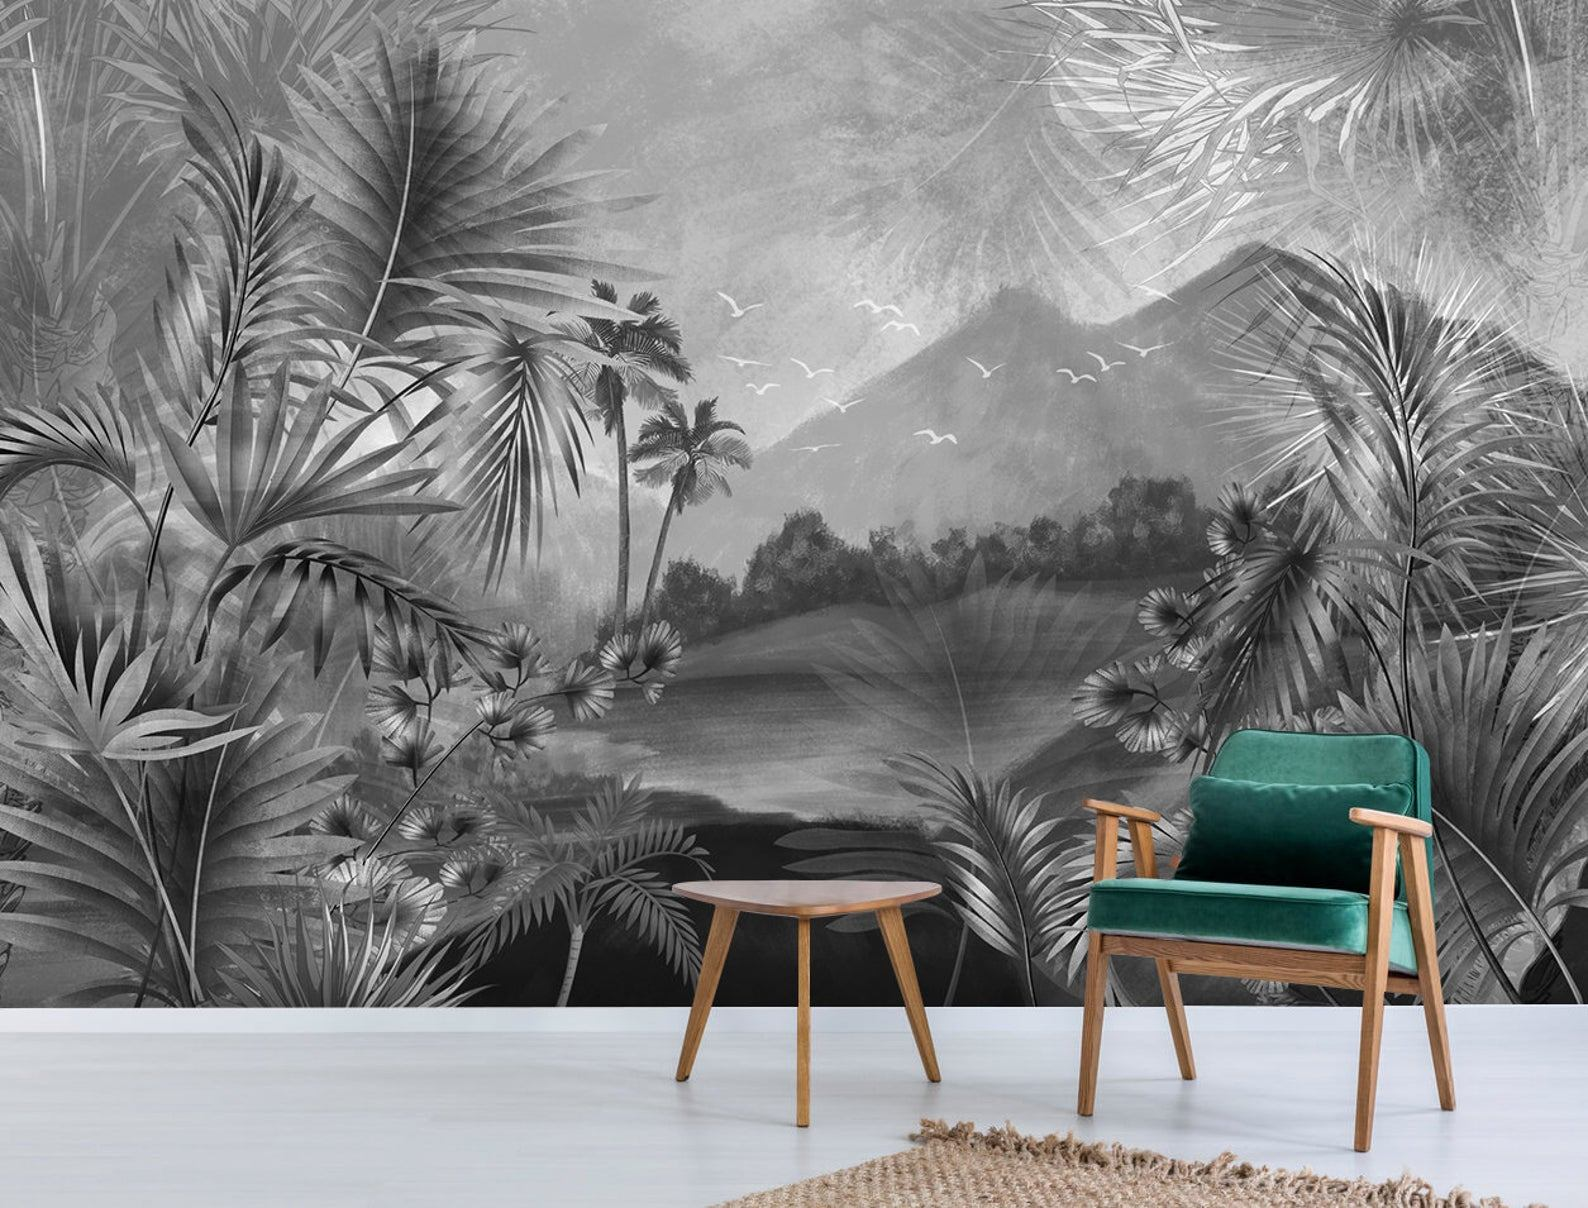 Benefits of Using Landscape Wallpapers or Landscape Wallmurals to Elevate the Look of Your Home